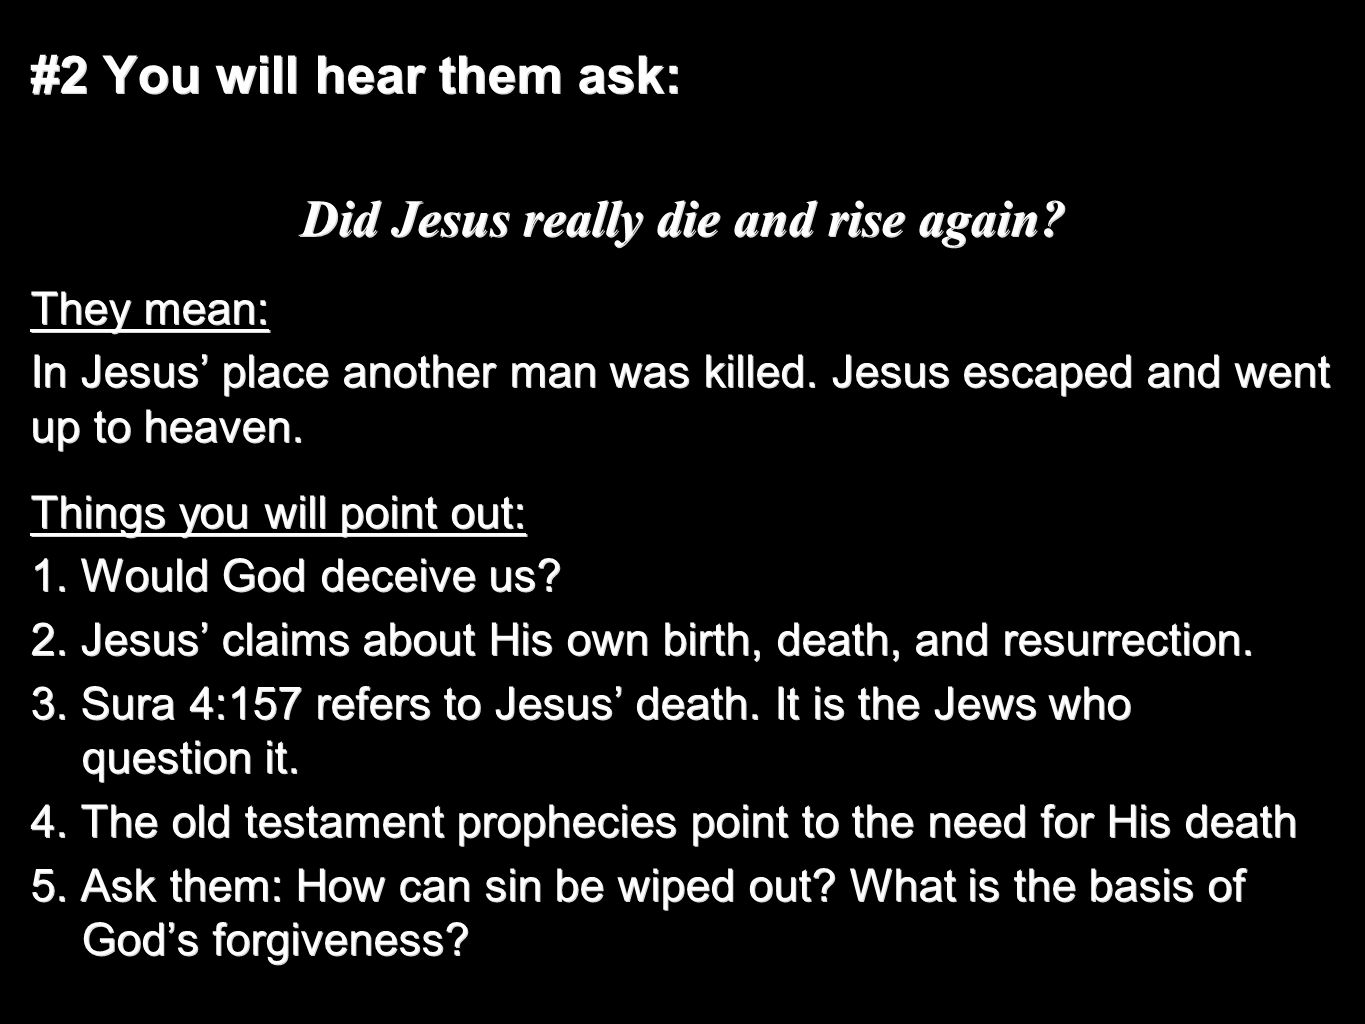 #2 You will hear them ask: Did Jesus really die and rise again.